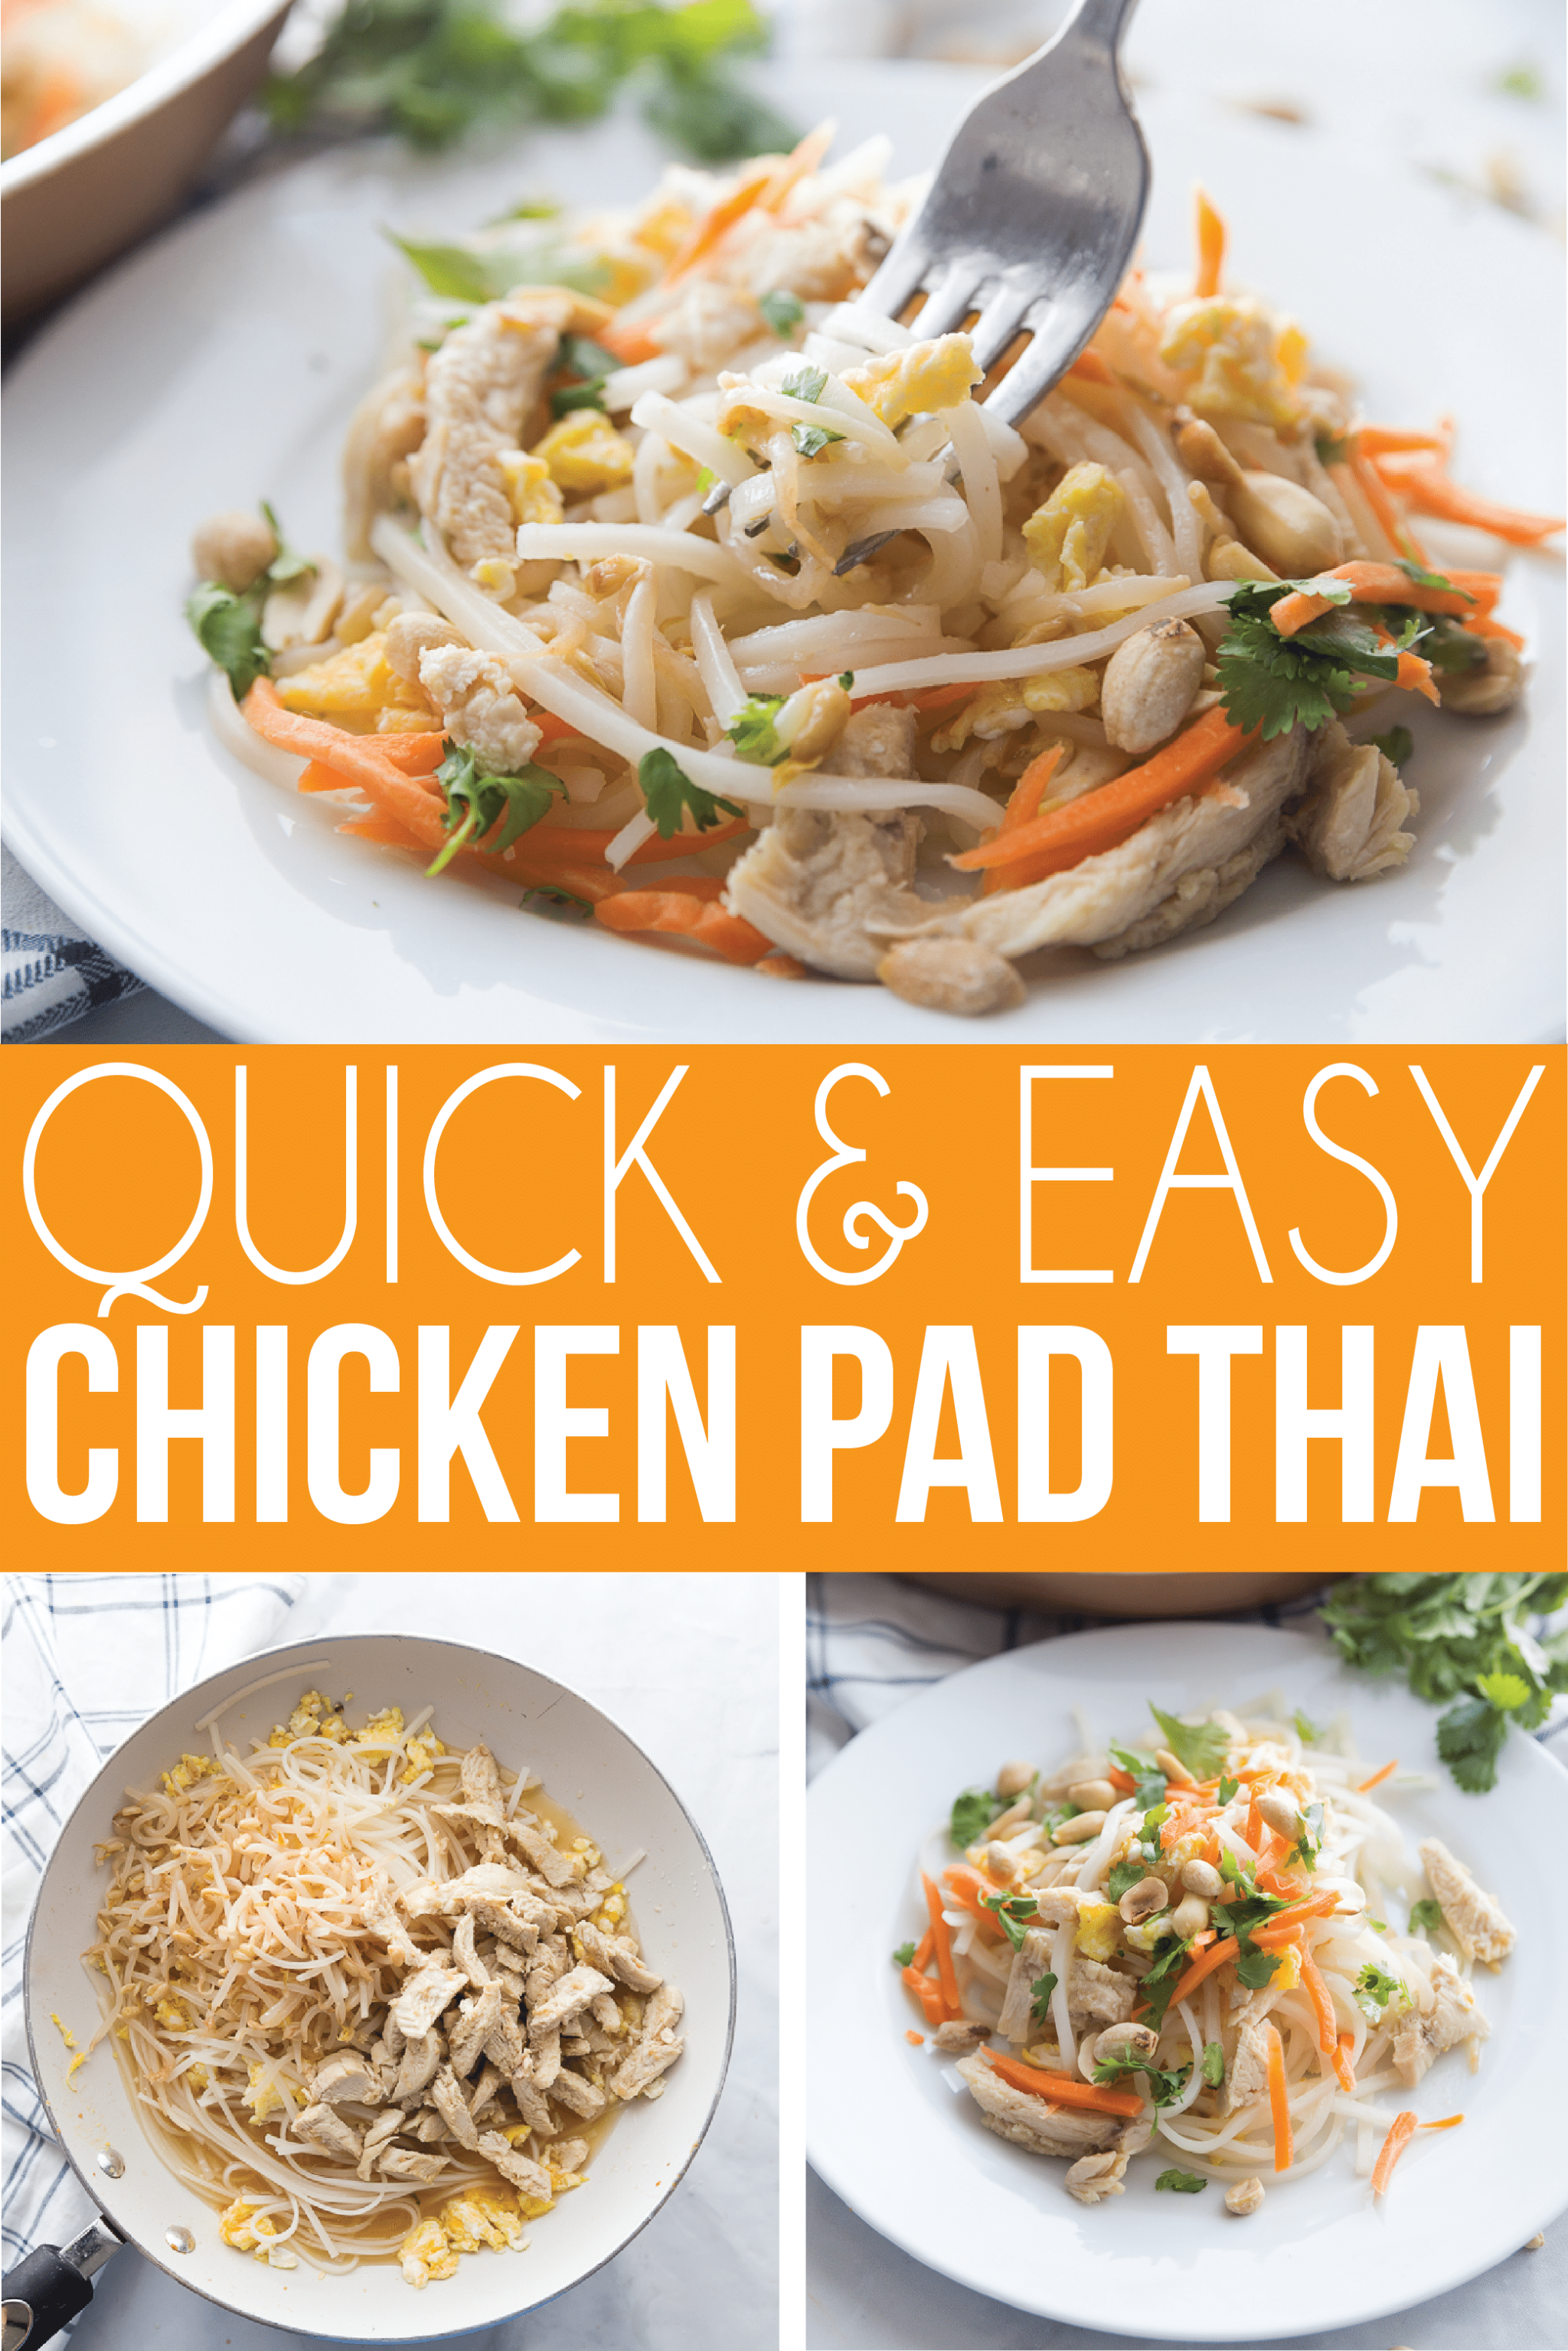 An easy Pad Thai recipe that can be made with chicken or shrimp. Or go for tofu instead to make this a great vegetarian or vegan pad Thai recipe as well! It's the best Pad Thai recipe I've found and can be topped with any healthy ingredients you want! via @playpartyplan